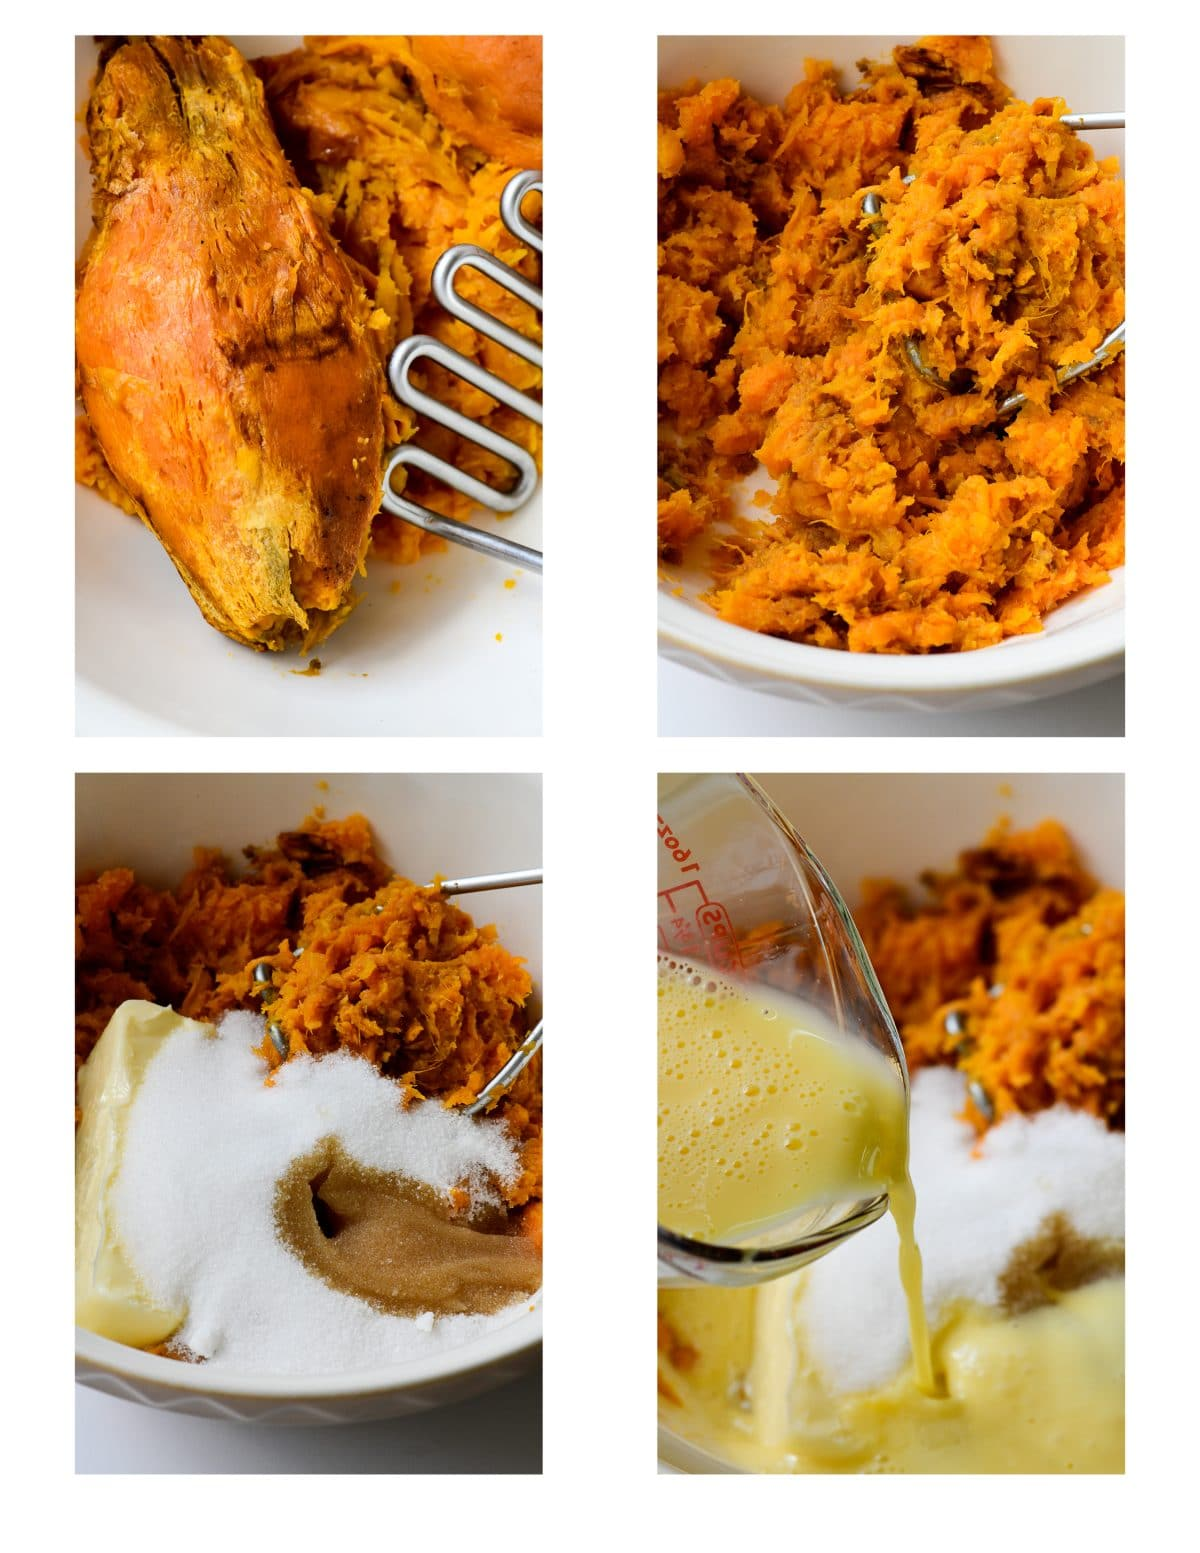 Collage photograph showing step by step instructions on how to make a sweet potato pie.